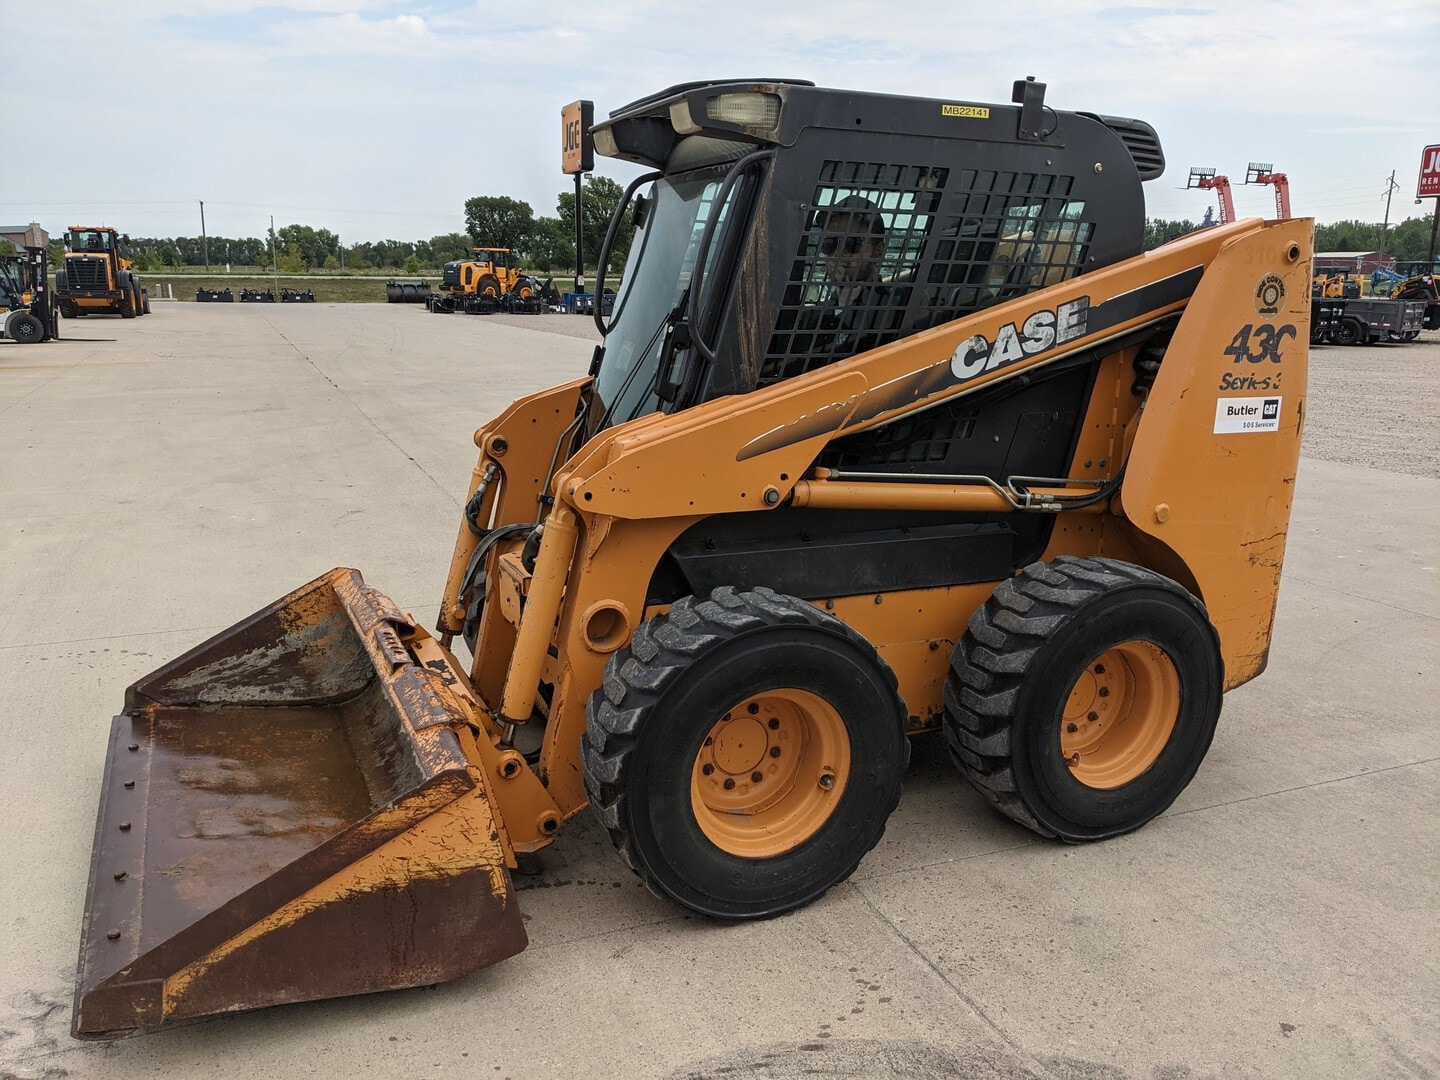 Used, 2008, Case Construction, 430, Skid Steers